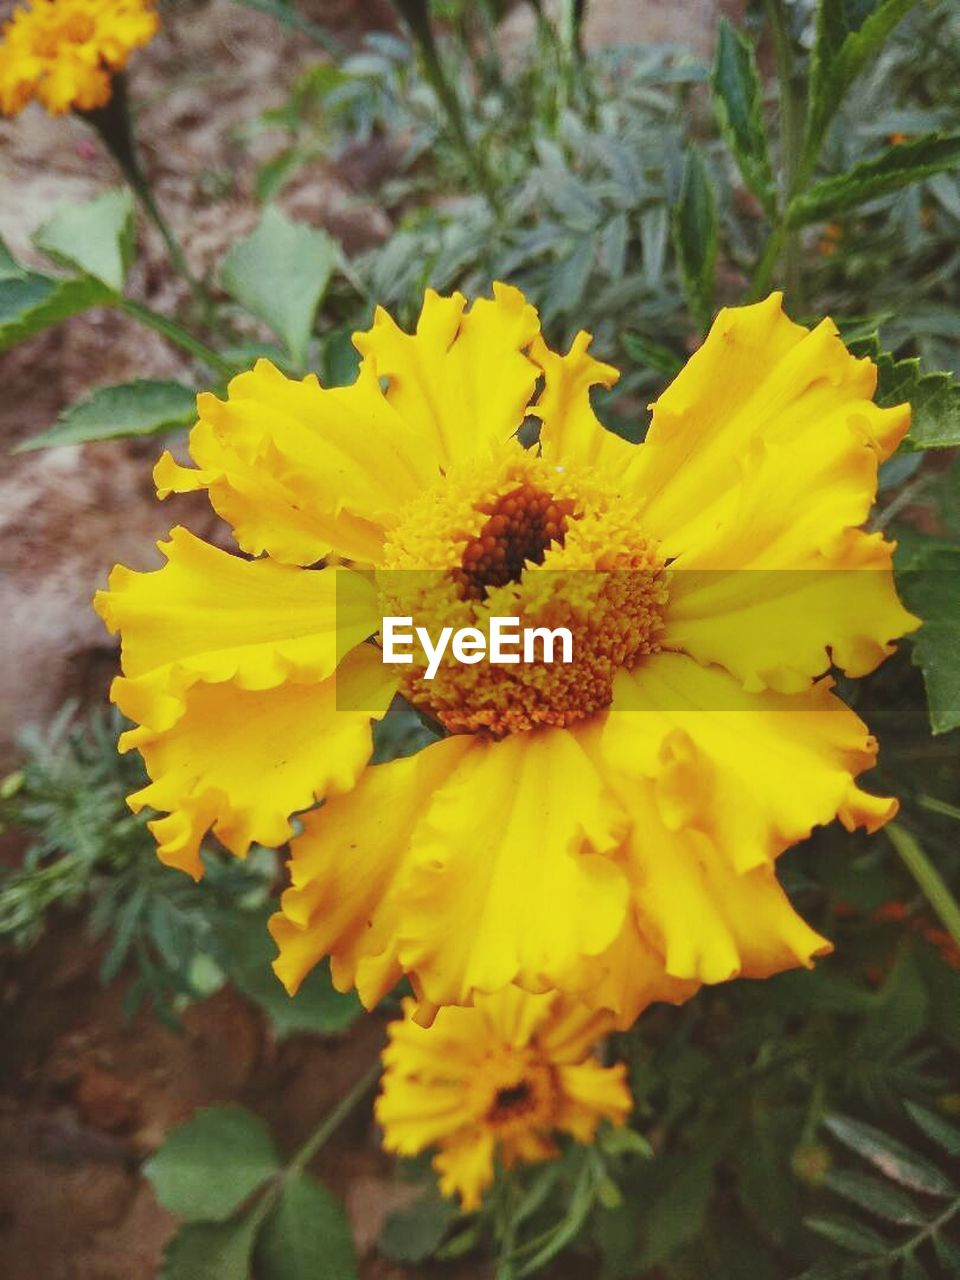 flower, yellow, petal, fragility, nature, flower head, beauty in nature, growth, plant, freshness, no people, vibrant color, outdoors, marigold, springtime, blossom, day, blooming, close-up